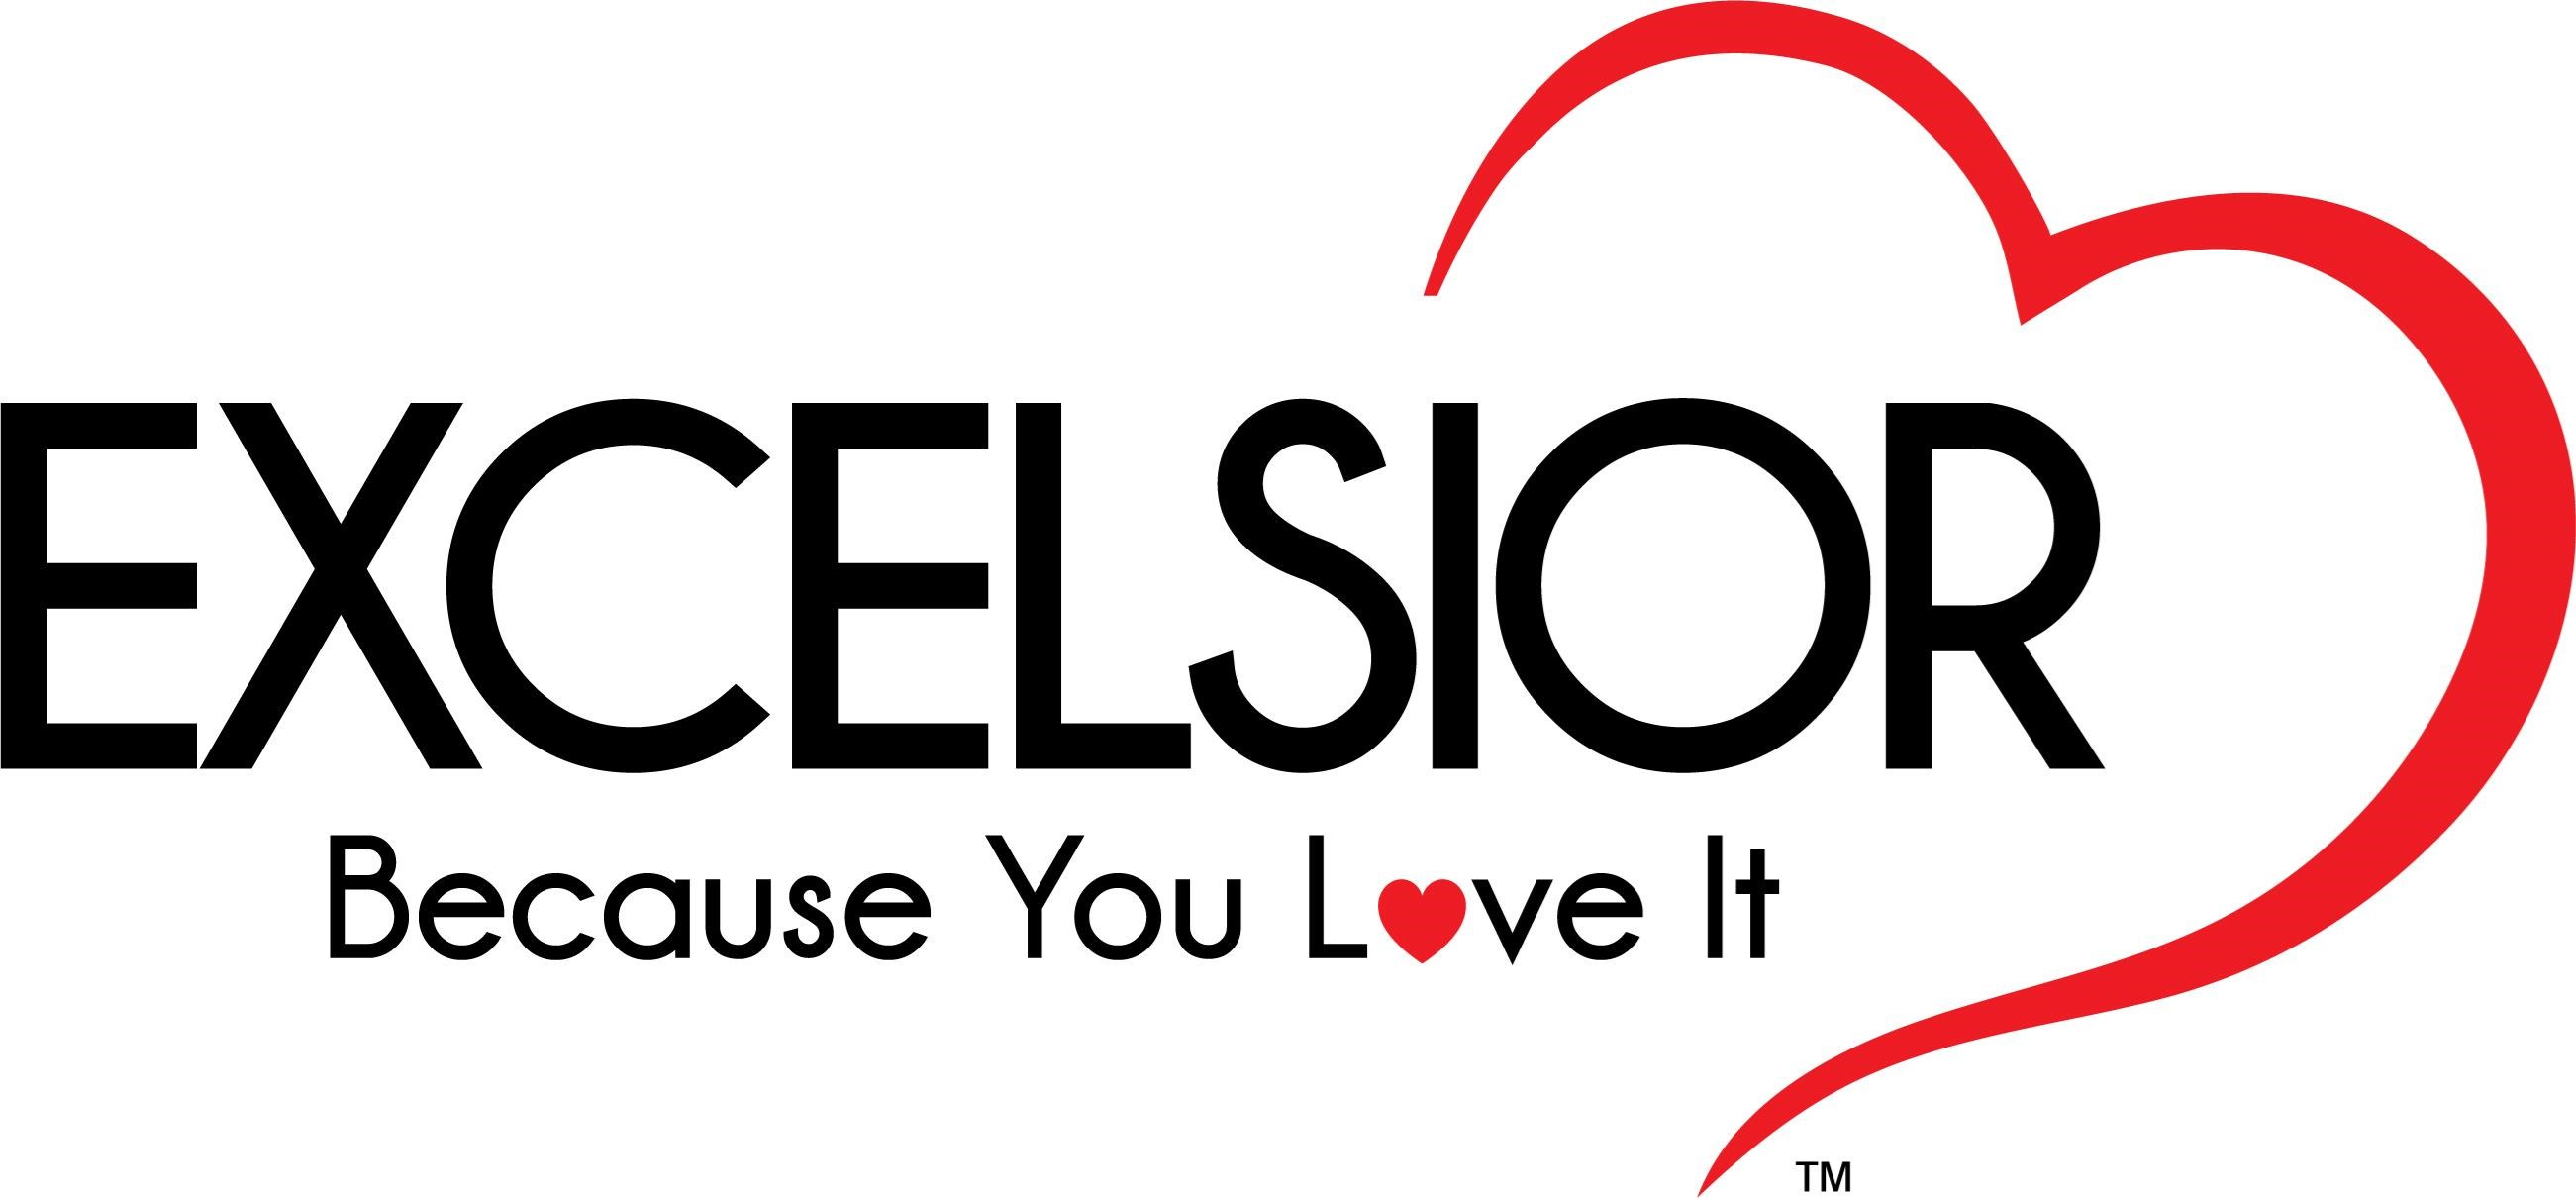 Stationary Furniture Stationary Furniture Protection $701-$1000 by Excelsior at C. S. Wo & Sons Hawaii